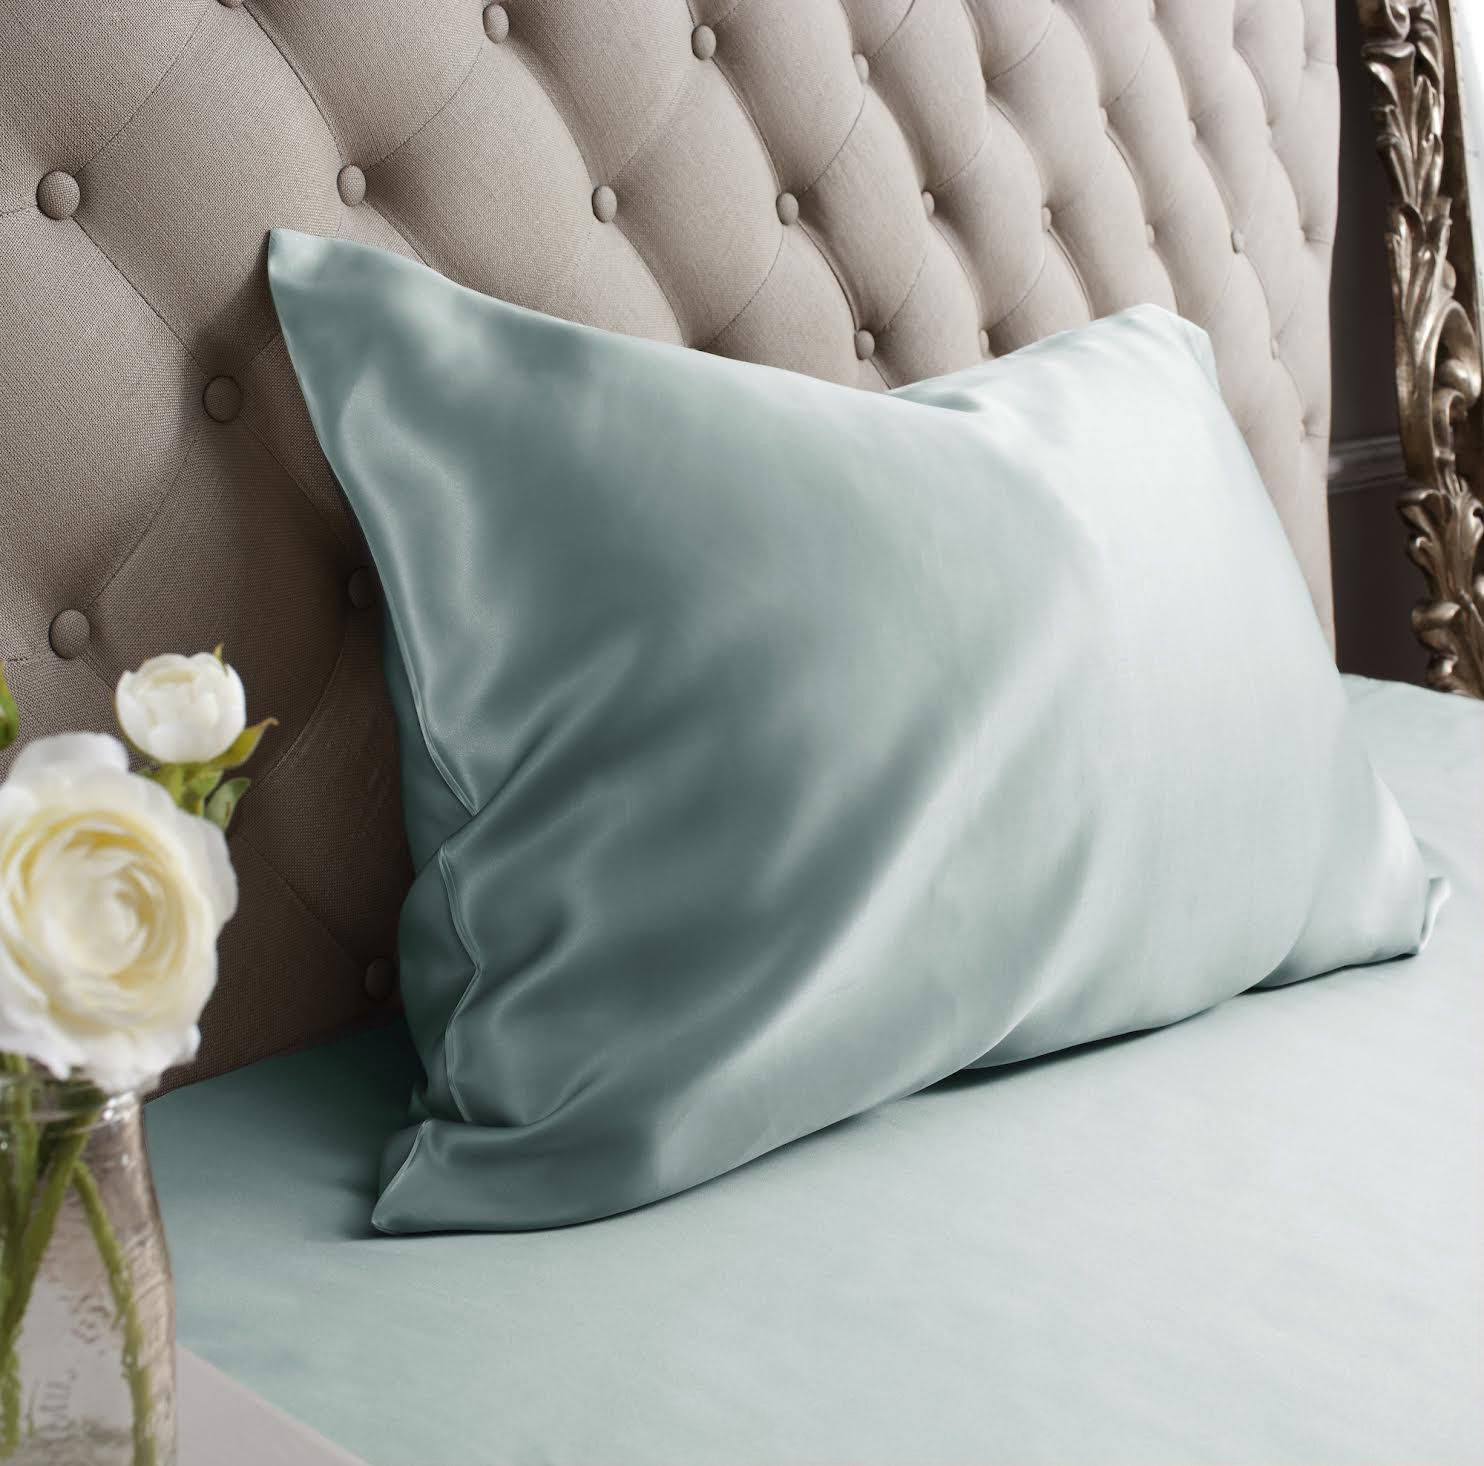 Luxurious Silk Pillowcases from Jasmine